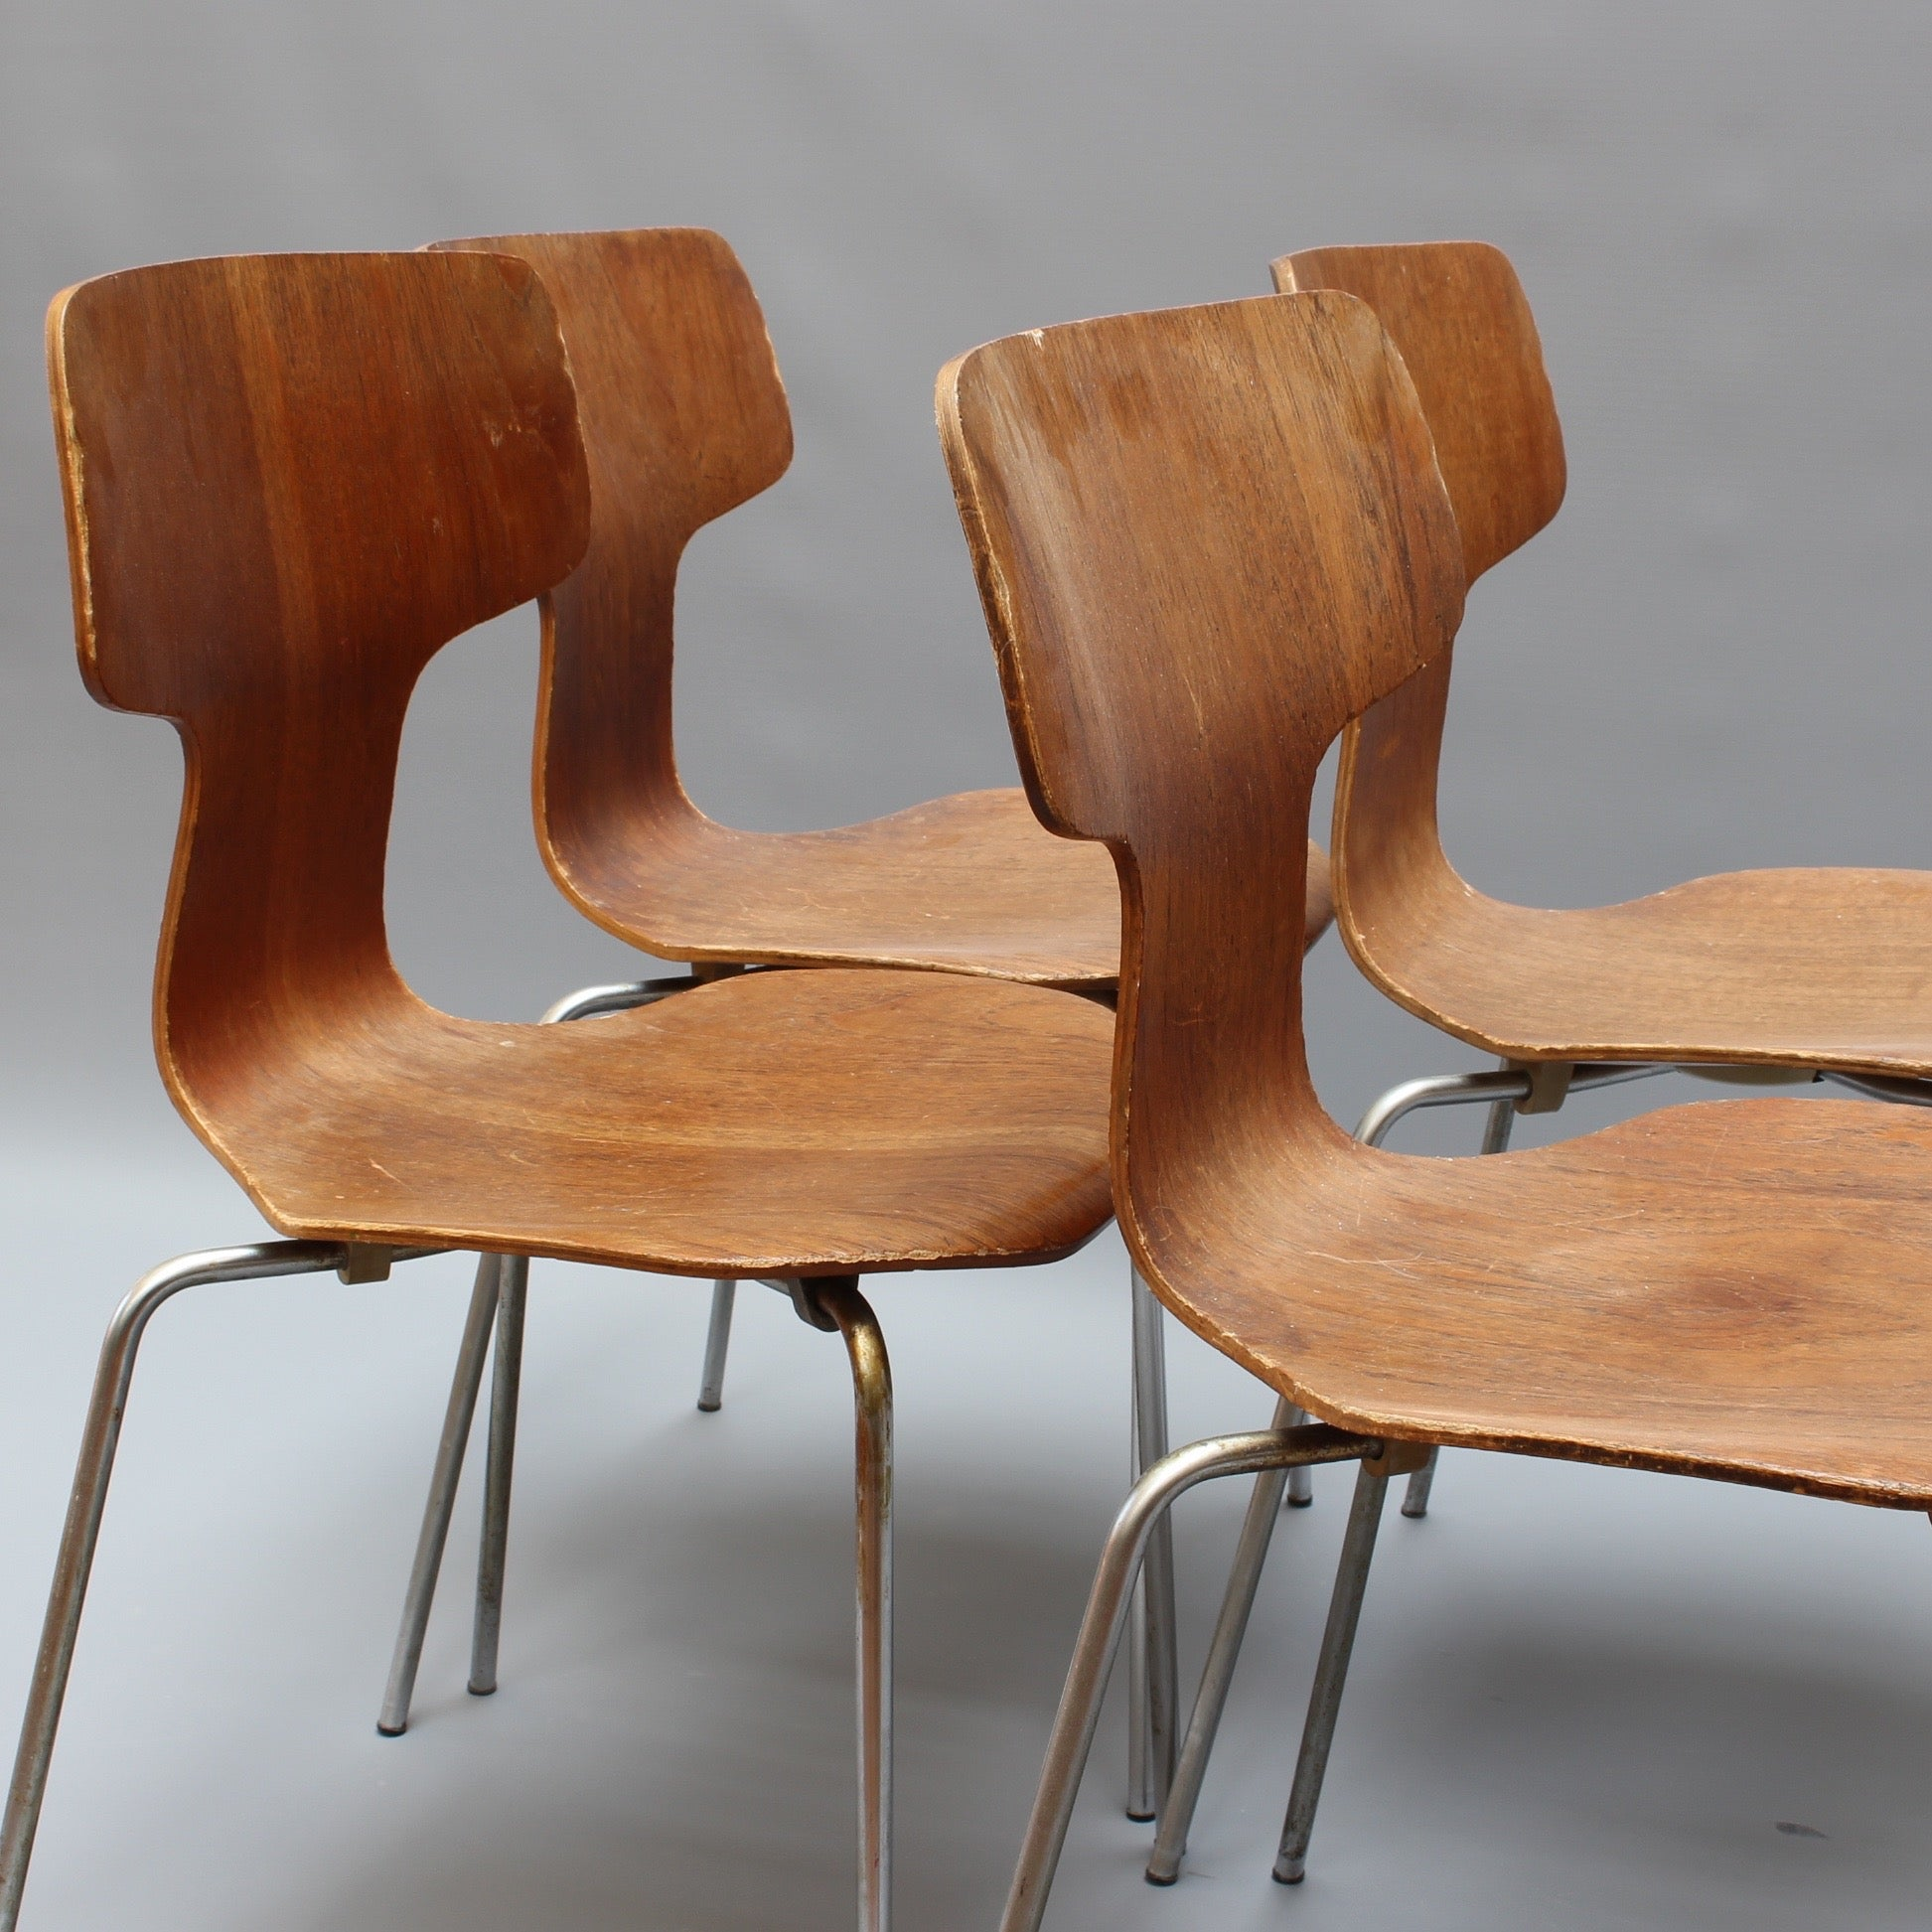 Set of Four Type 3103 Chairs by Arne Jacobsen for Fritz Hansen (1969)